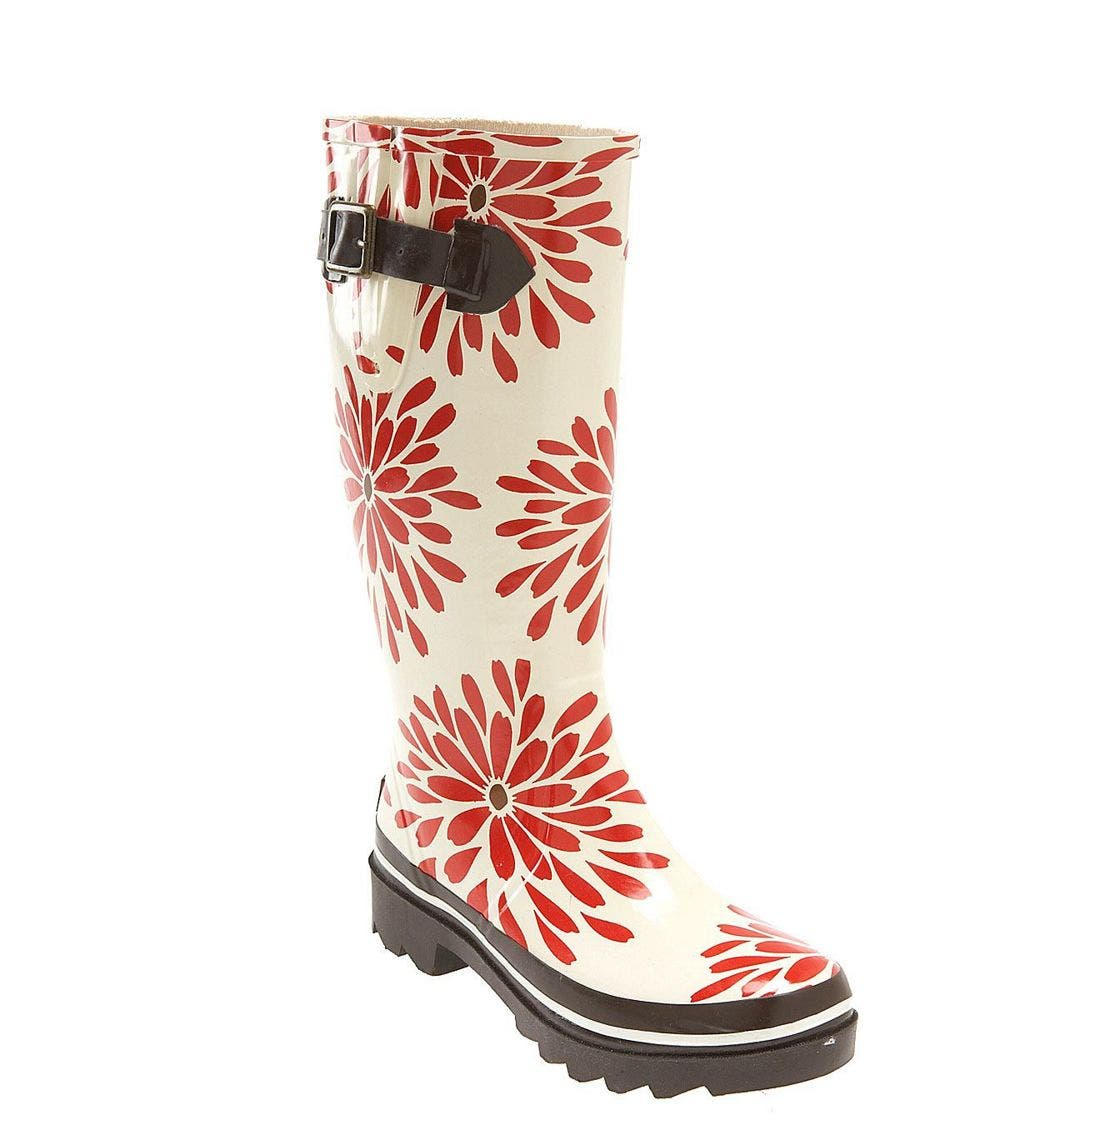 Alternate Image 1 Selected - kate spade 'riley' red daisy rain boot